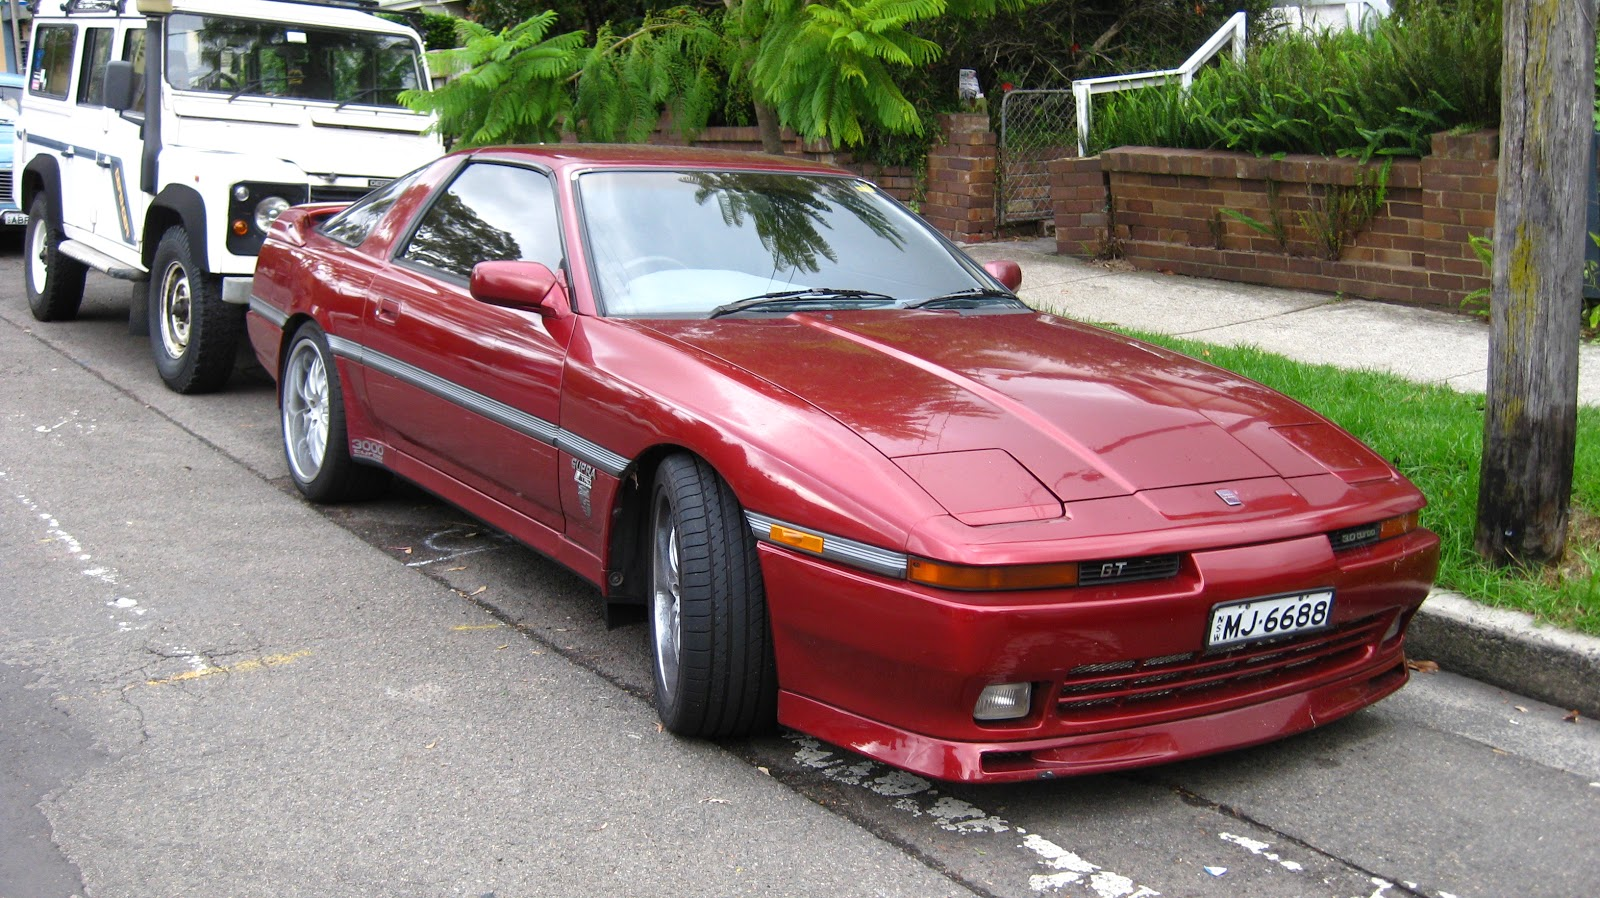 aussie old parked cars 1990 toyota supra gt 3 0 turbo. Black Bedroom Furniture Sets. Home Design Ideas